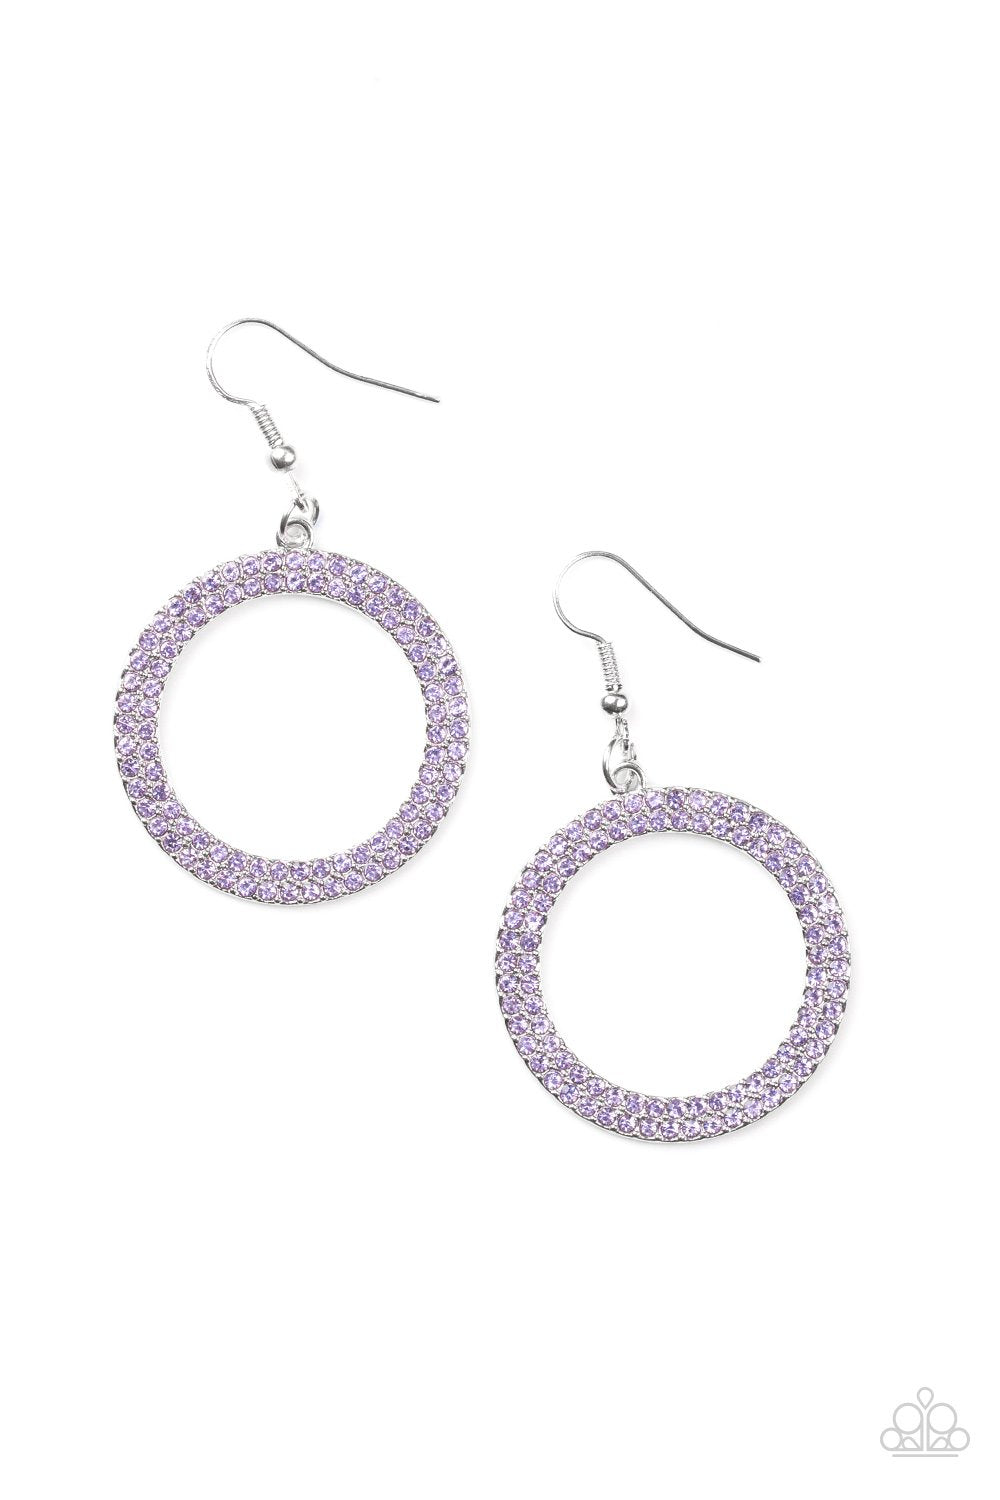 Paparazzi Accessories ~ Bubbly Babe - Purple